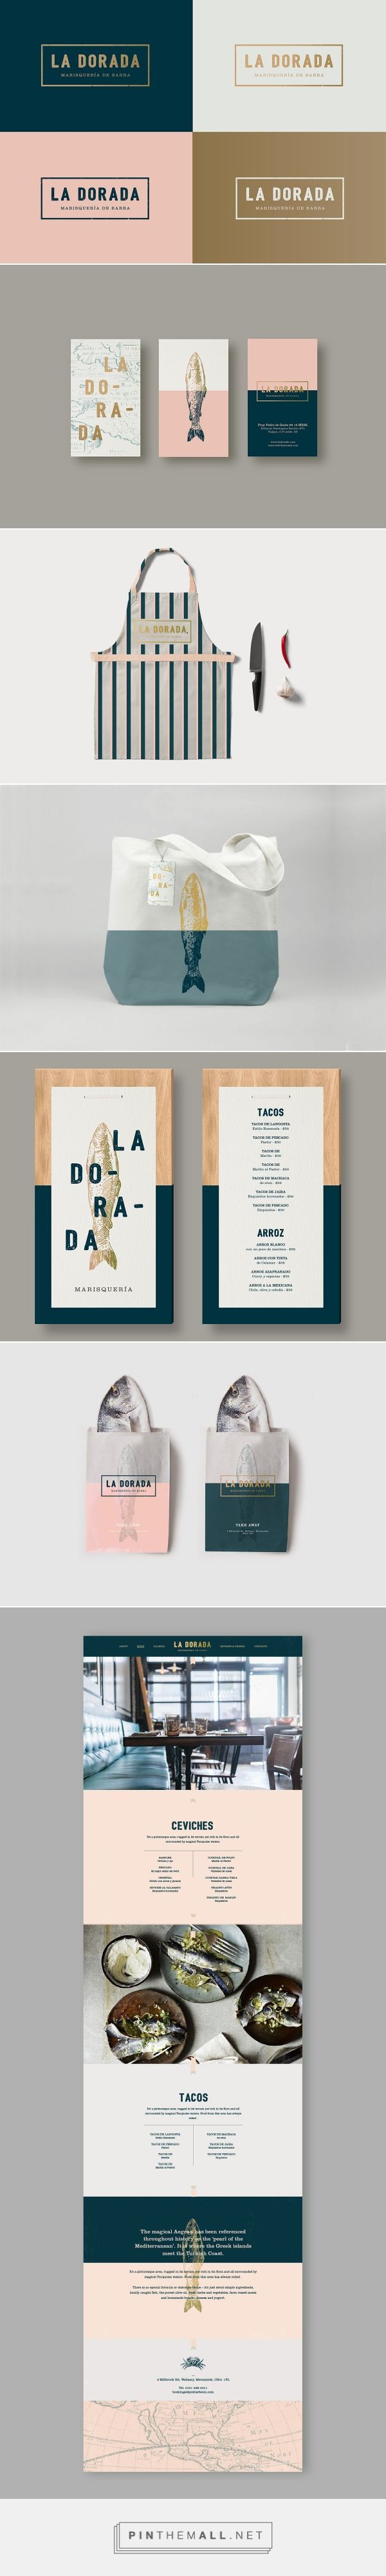 La Dorada packaging branding on Behance curated by Packaging Diva PD.